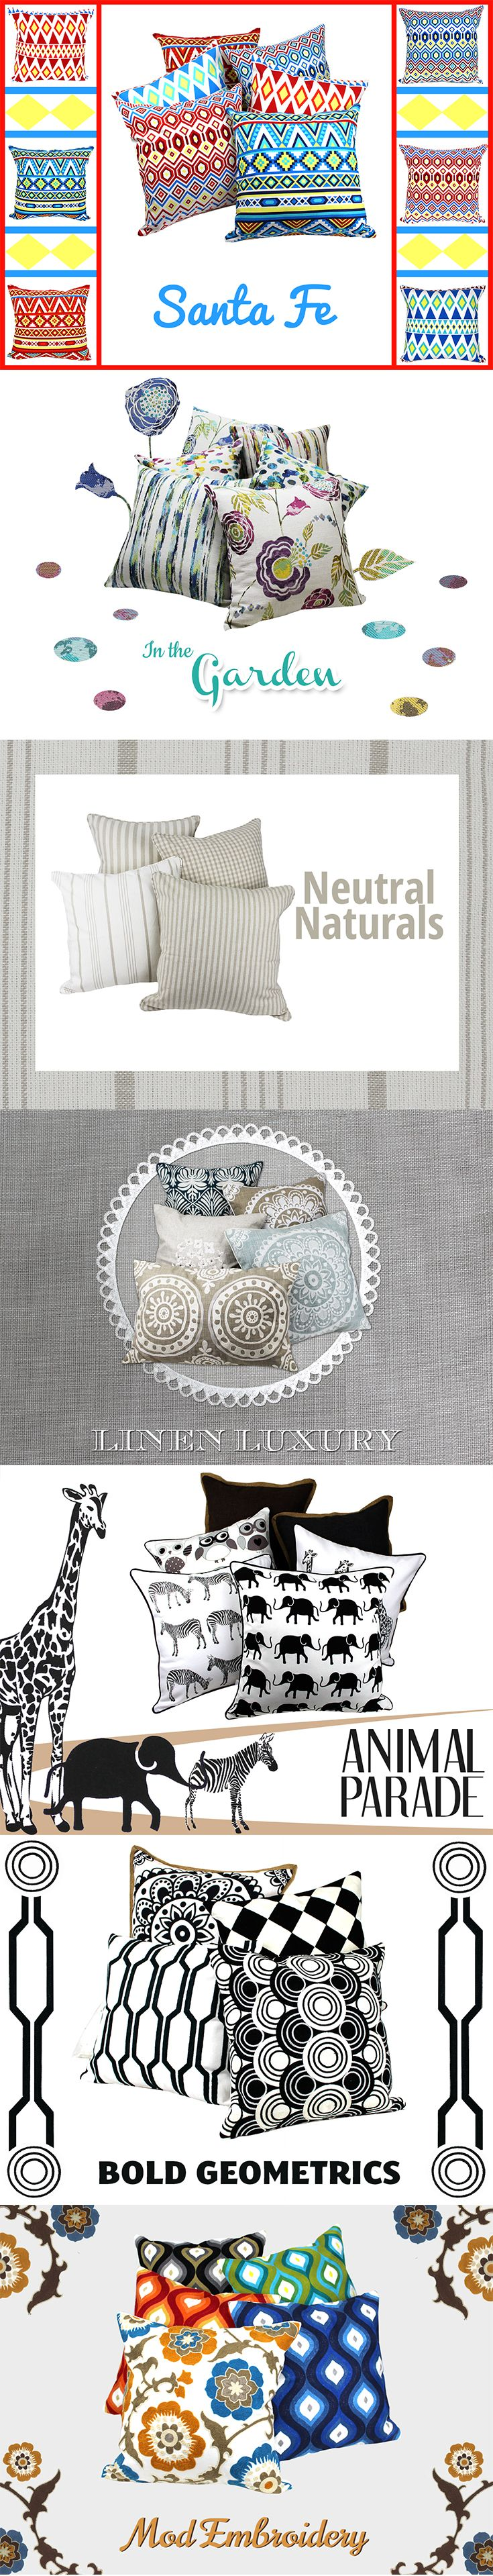 27 best Fabricland Cushion Covers images on Pinterest